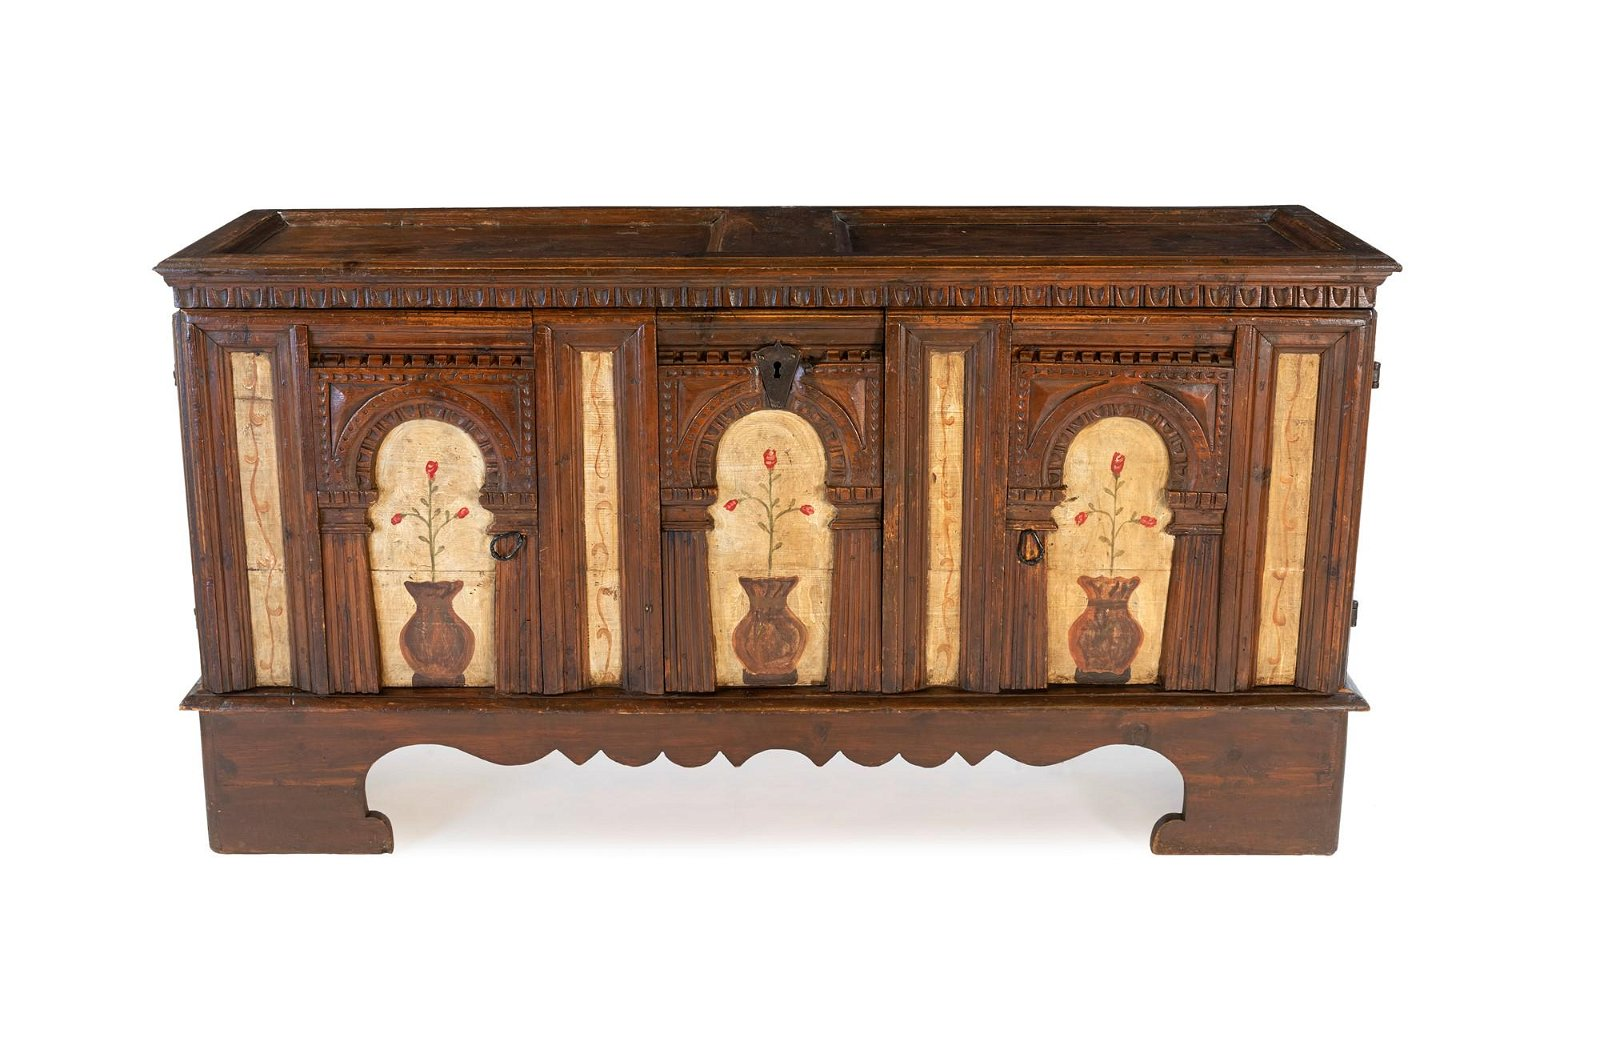 Chest with carved and painted facade from 18th century